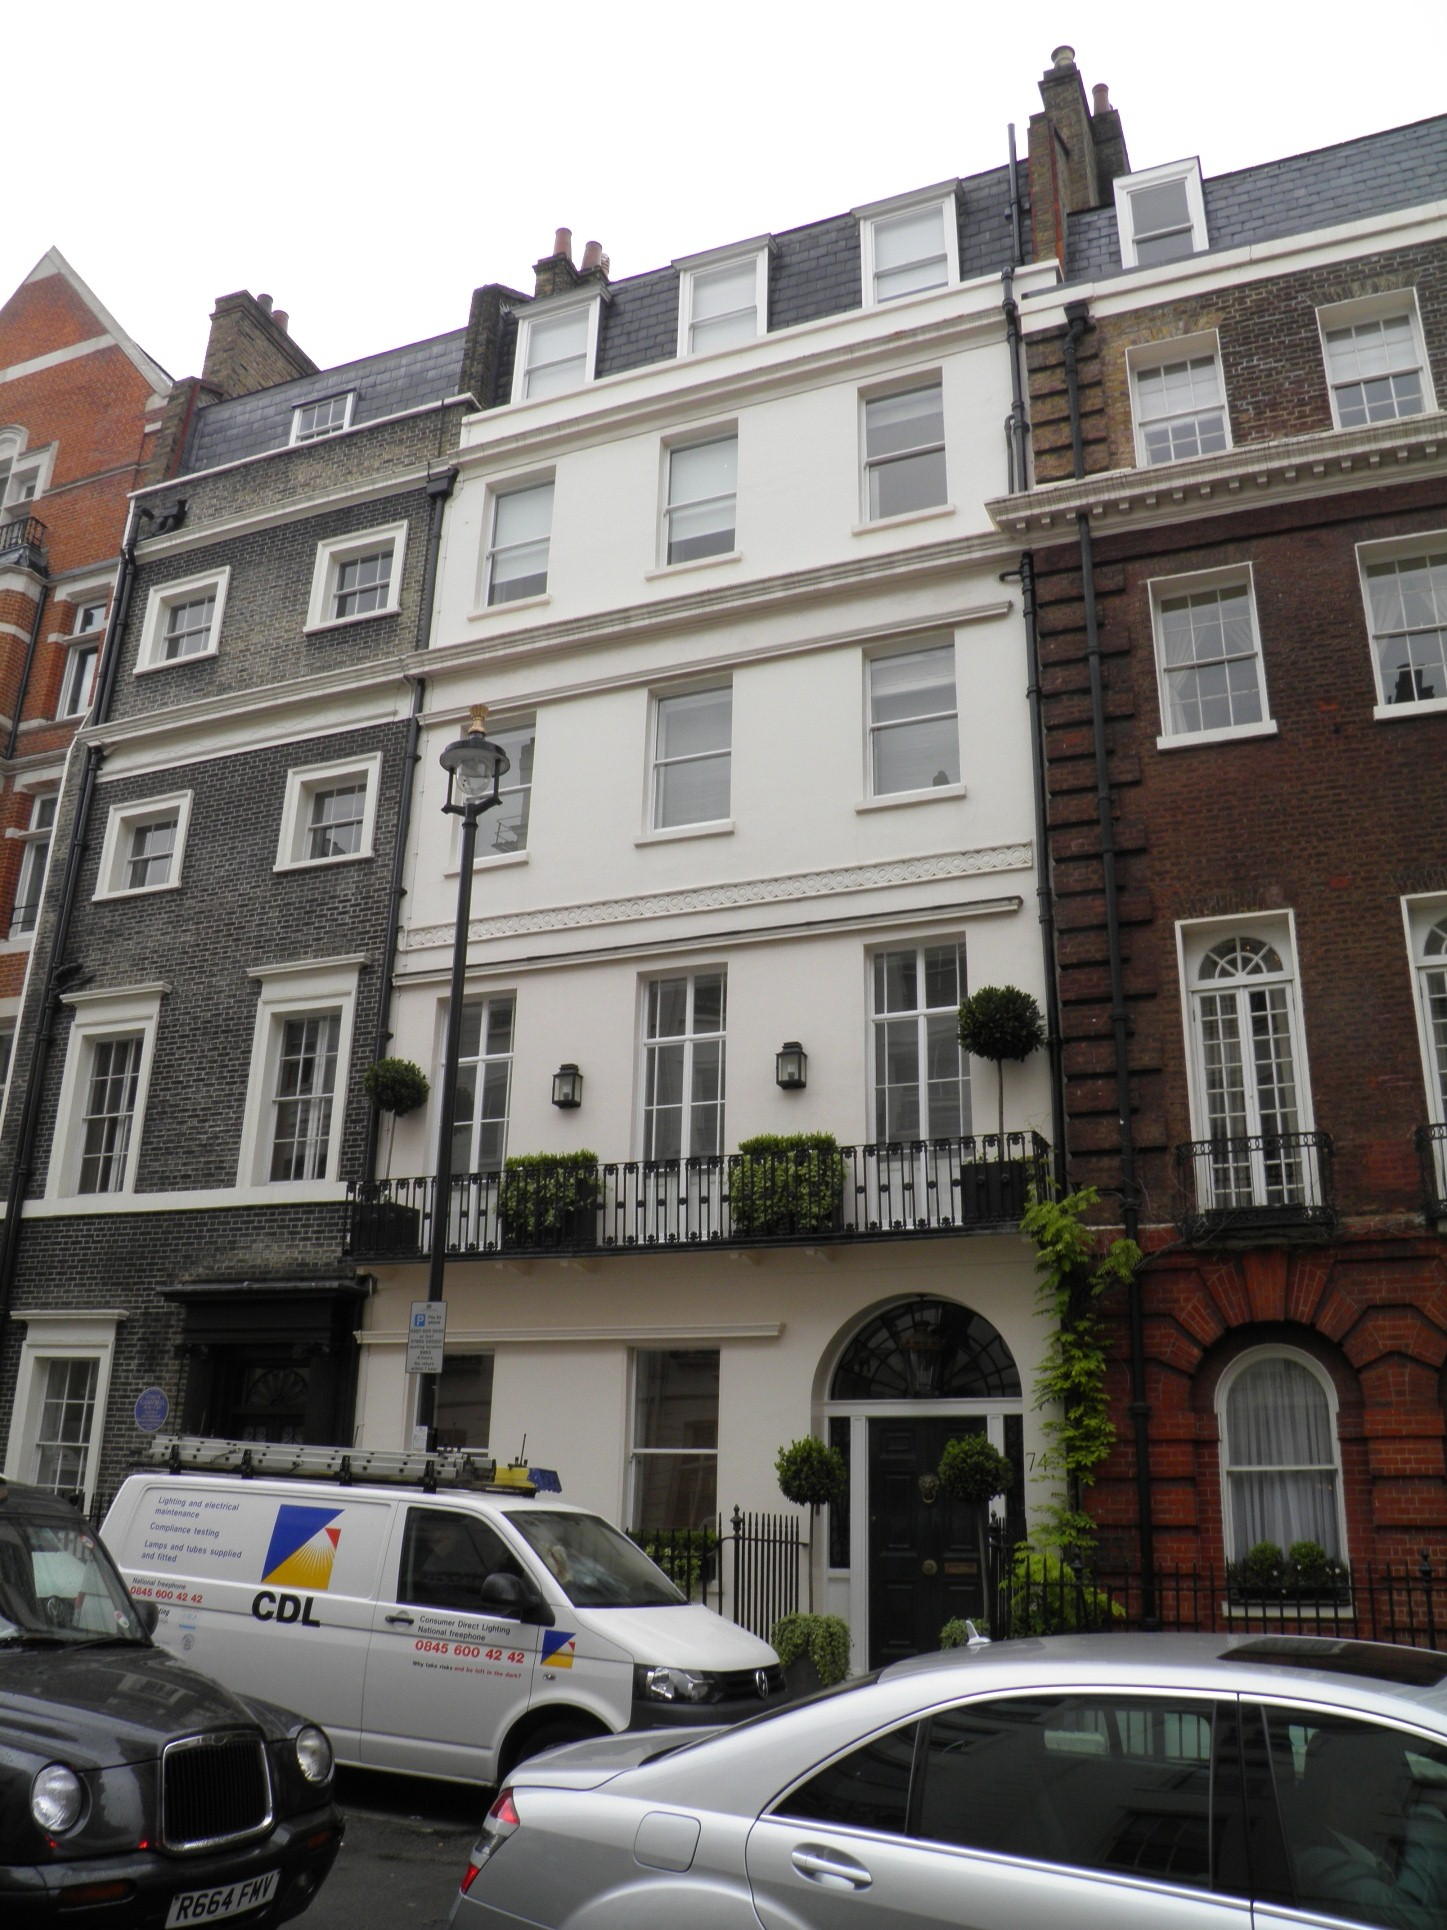 The house of Jack The Ripper | Darkest London